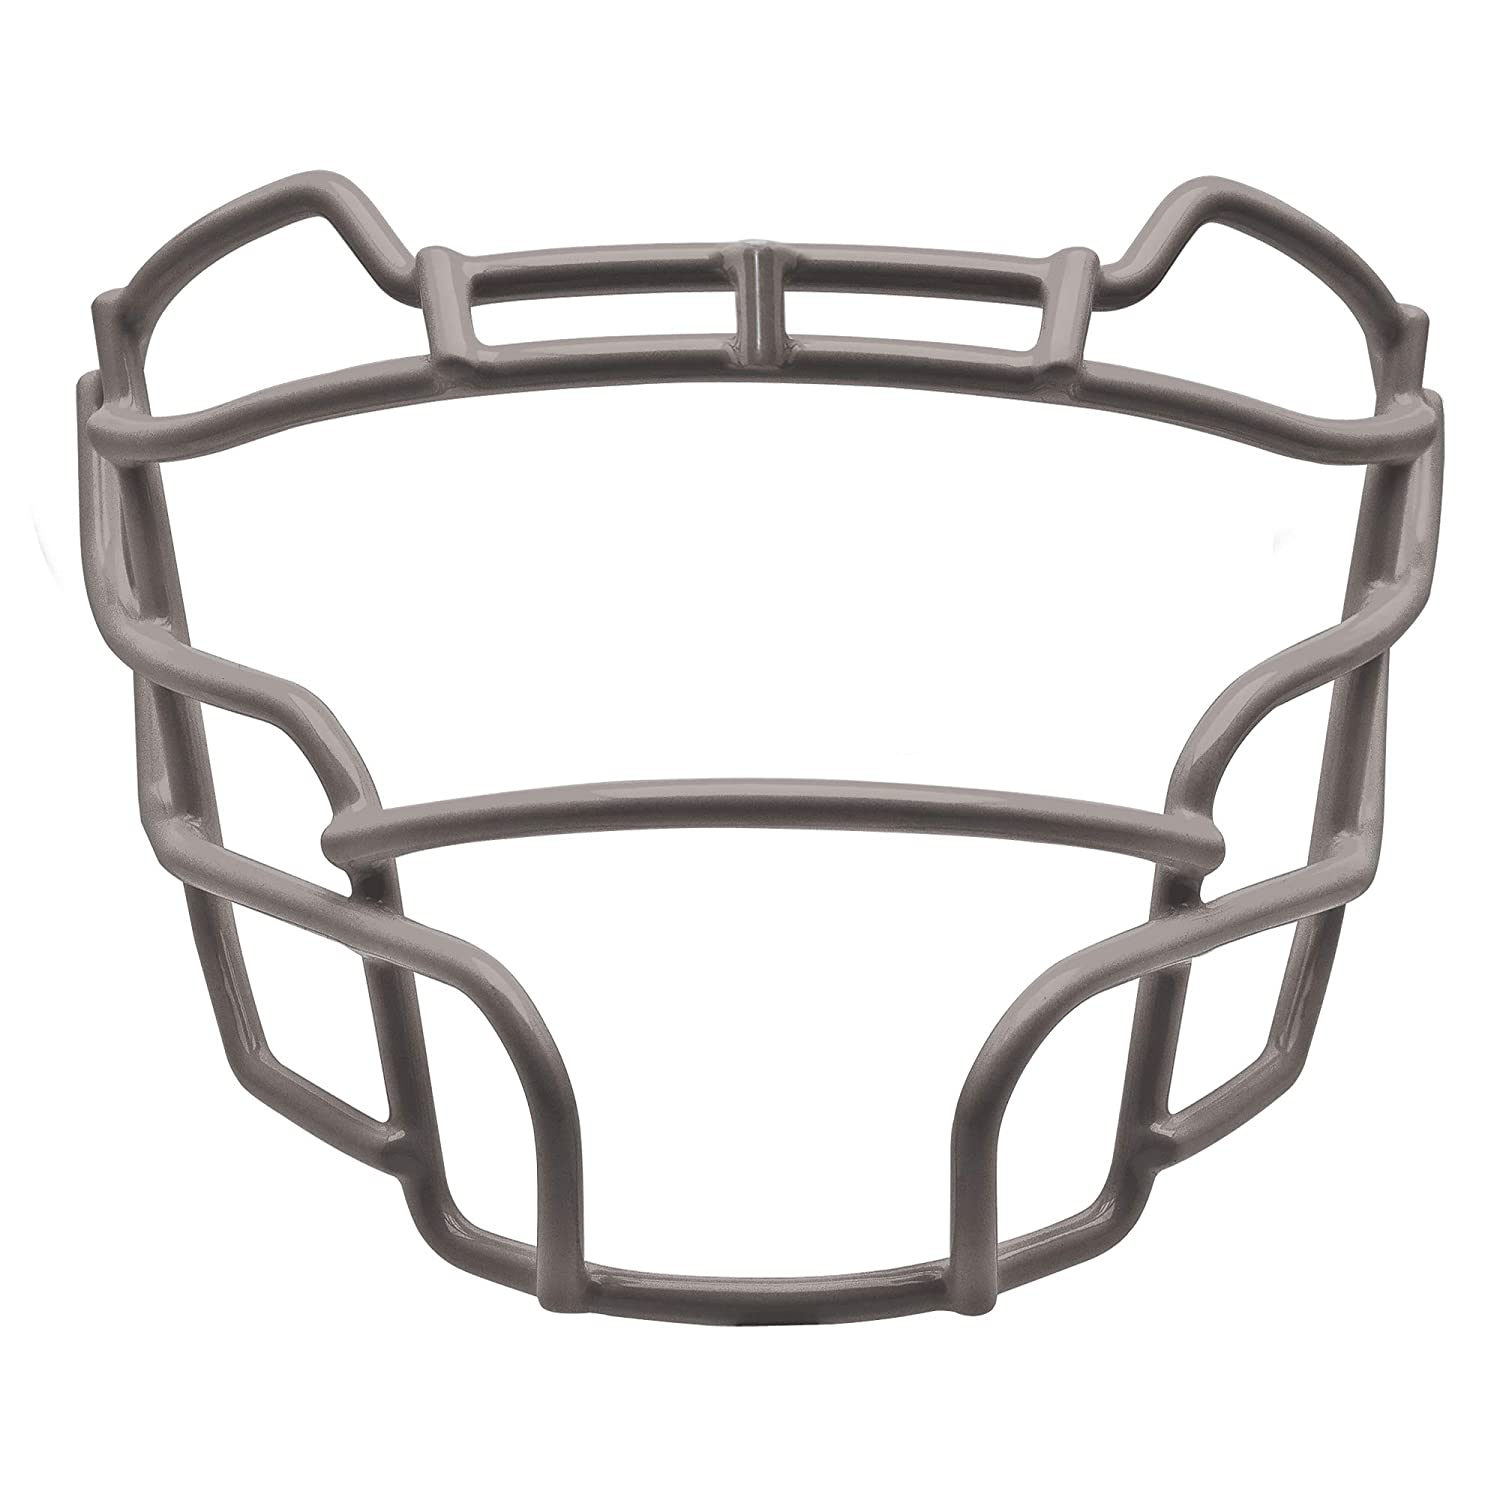 Schutt Sports VROPO PR Carbon Steel Vengeance Varsity Football Faceguard